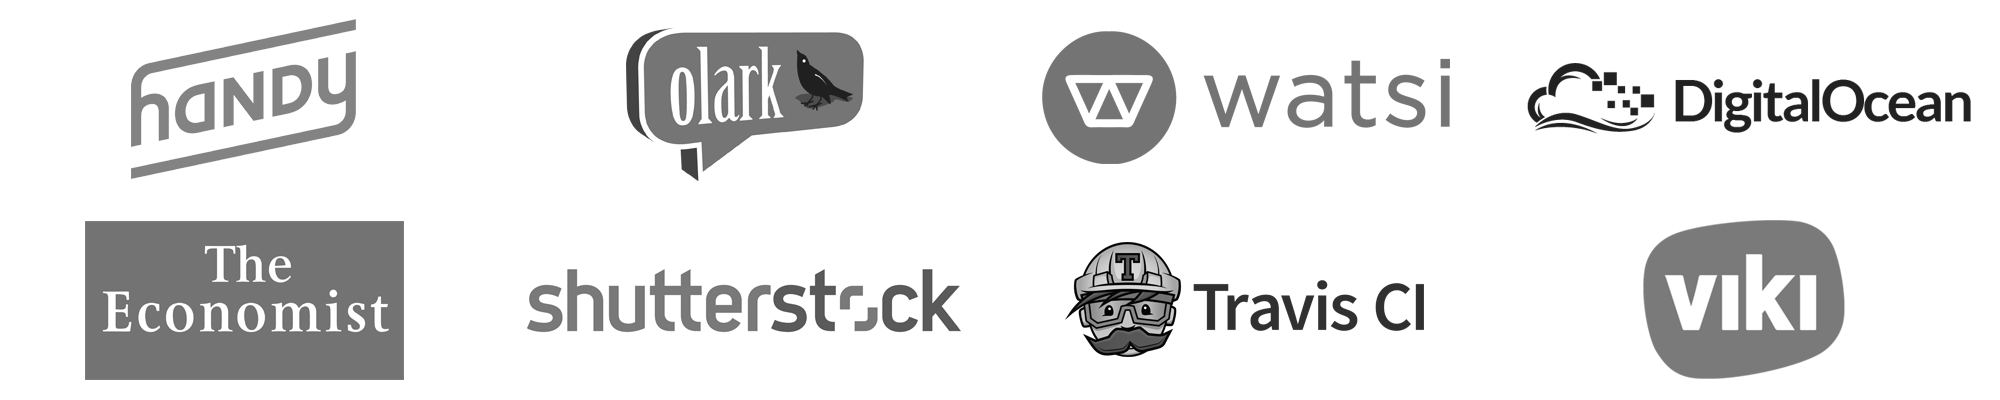 DigitalOcean, Viki, and Olark are just some of the companies that use and trust Customer.io!